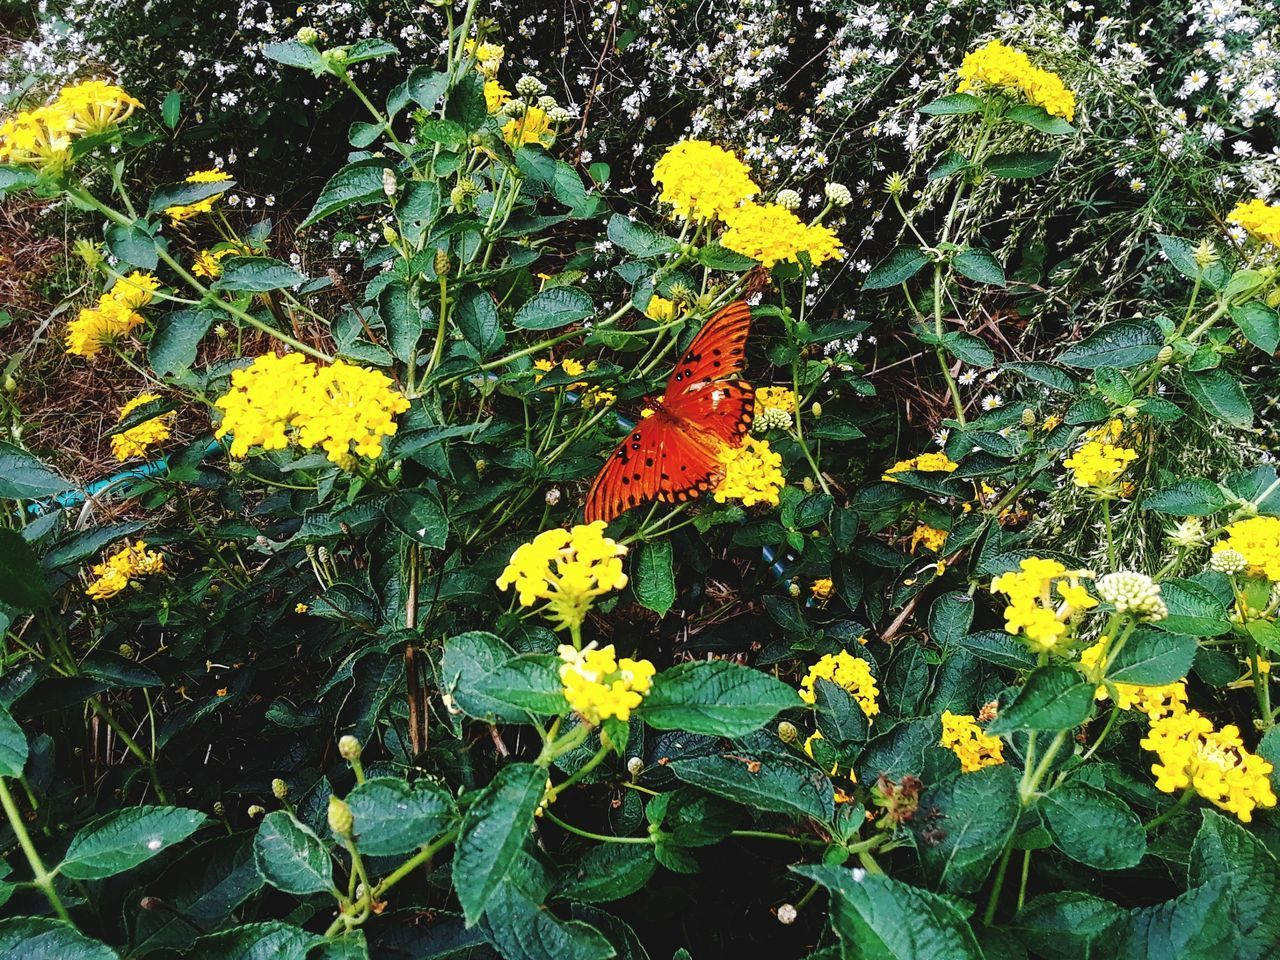 flower, plant, flowering plant, growth, yellow, beauty in nature, fragility, vulnerability, nature, freshness, day, plant part, petal, leaf, no people, flower head, close-up, green color, inflorescence, high angle view, outdoors, lantana, butterfly - insect, springtime, animal wing, butterfly